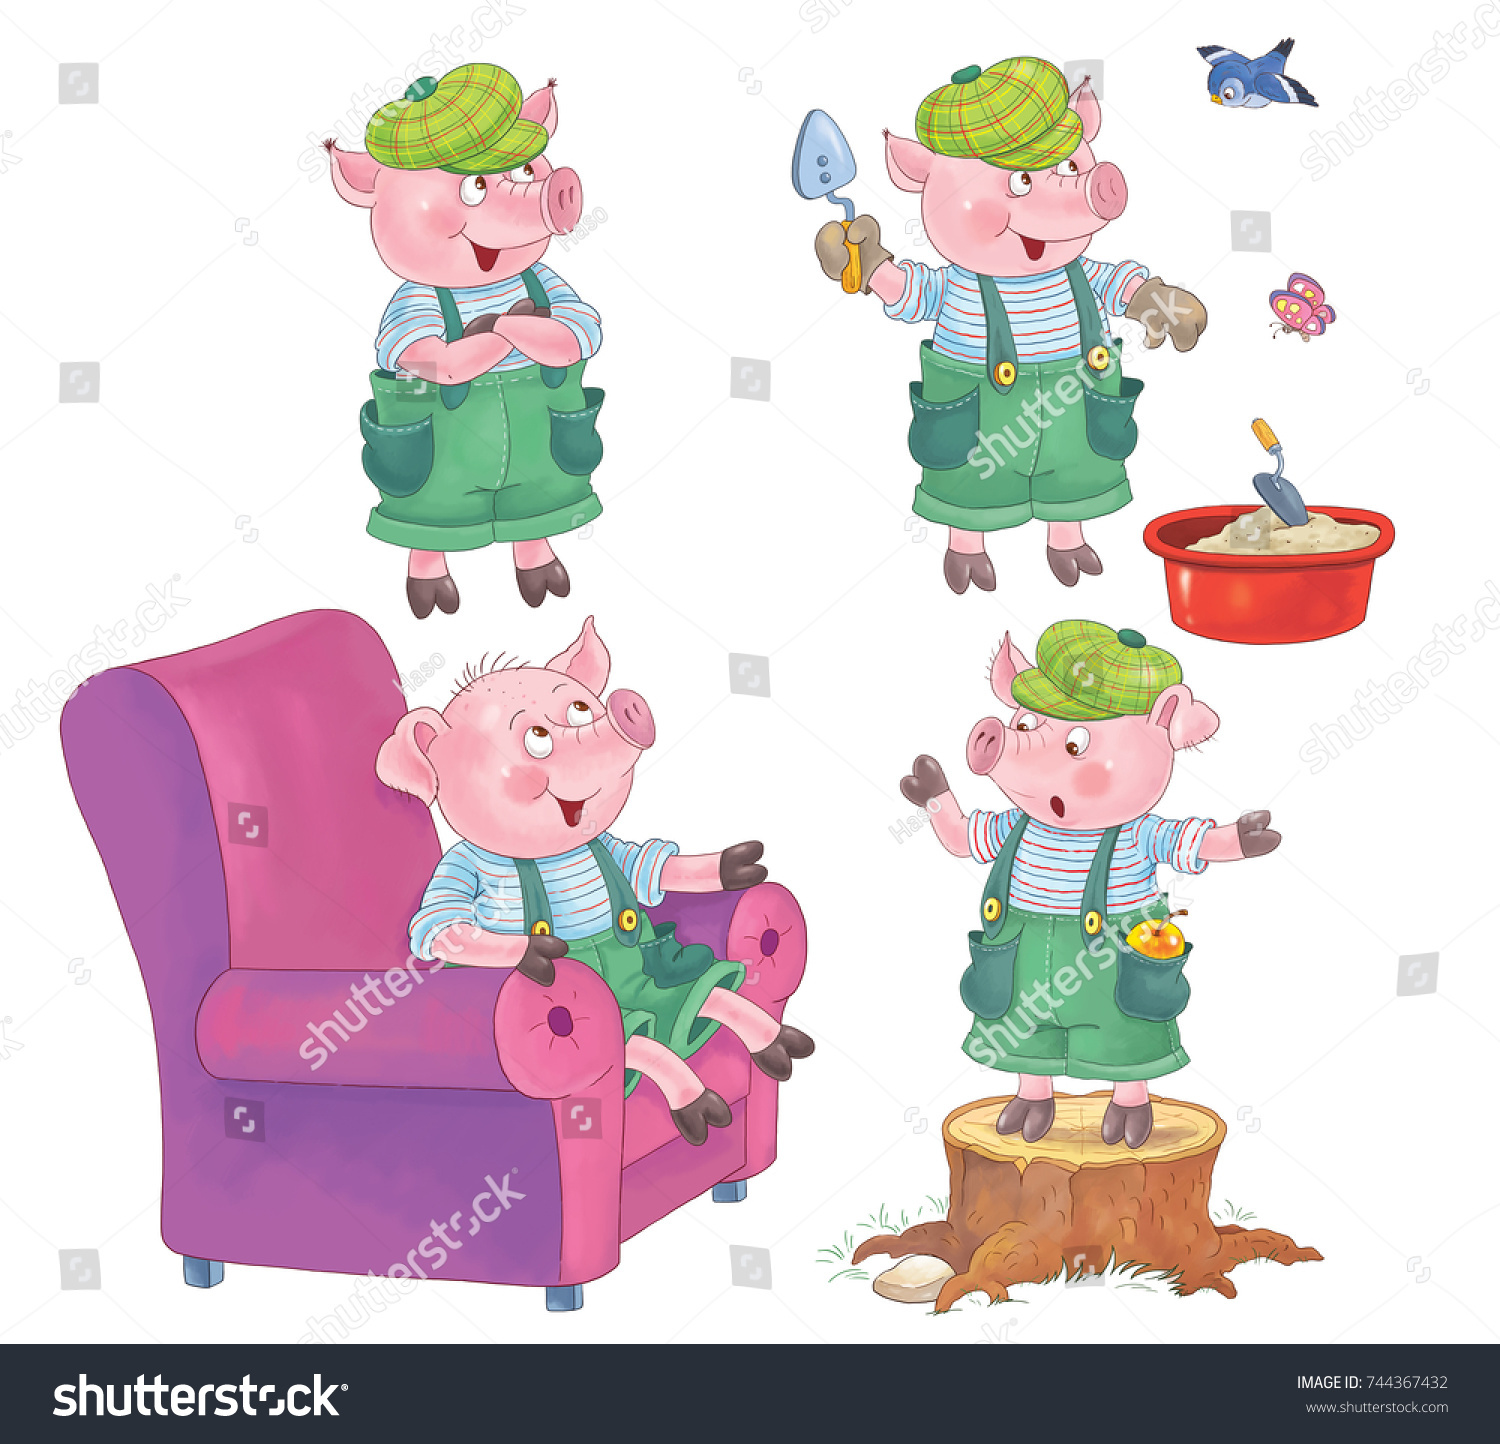 Three little pigs a cute pig fairy tale coloring book coloring page illustration for children funny cartoon characters isolated on white background